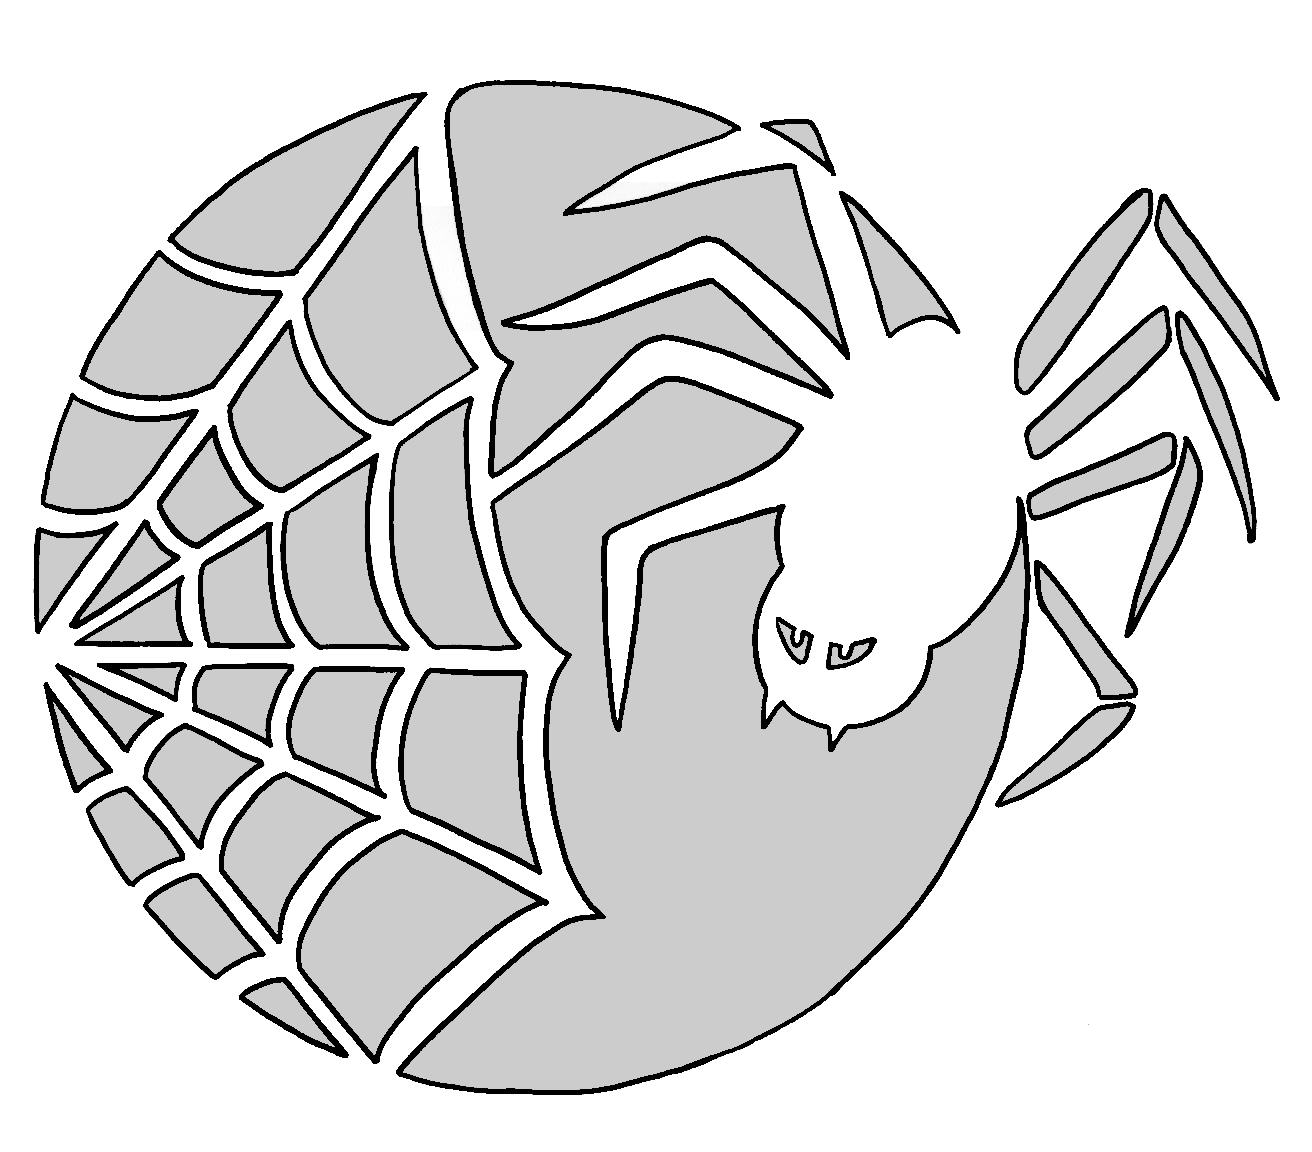 Free printable Spider halloween pumpkin carving pattern designs ...